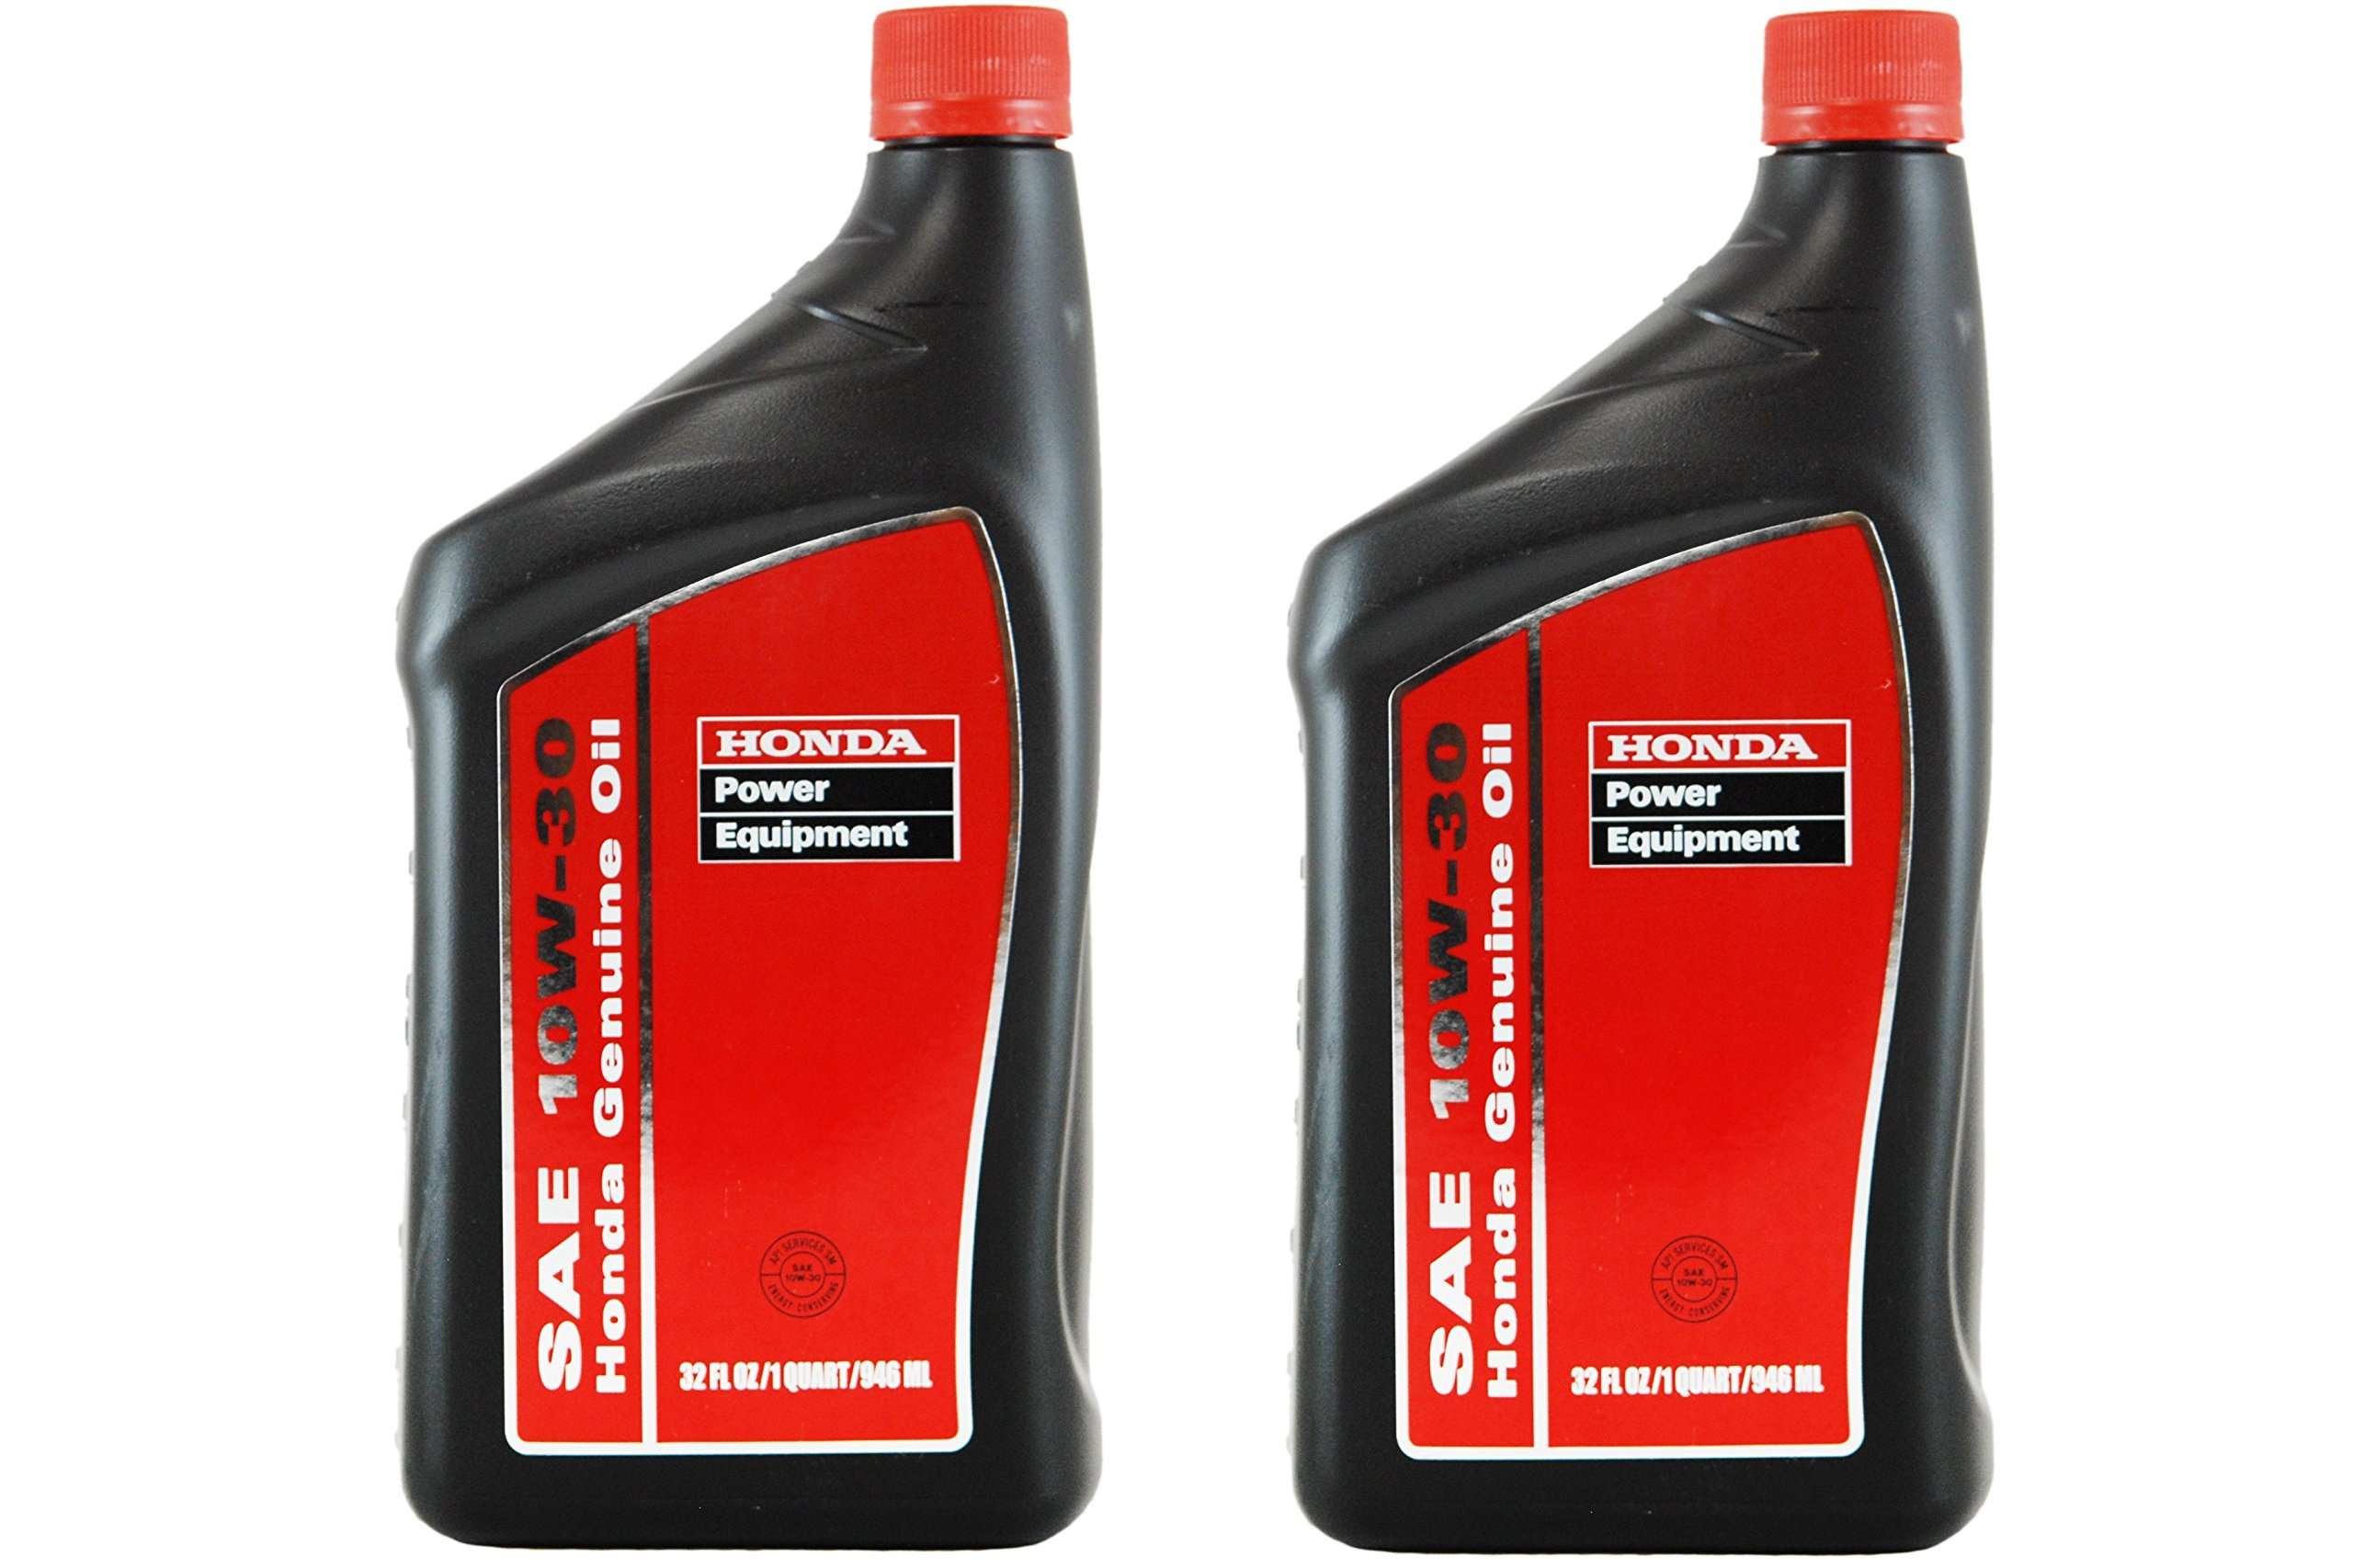 Honda 08207-10W30 PK2 Motor Oil by Honda